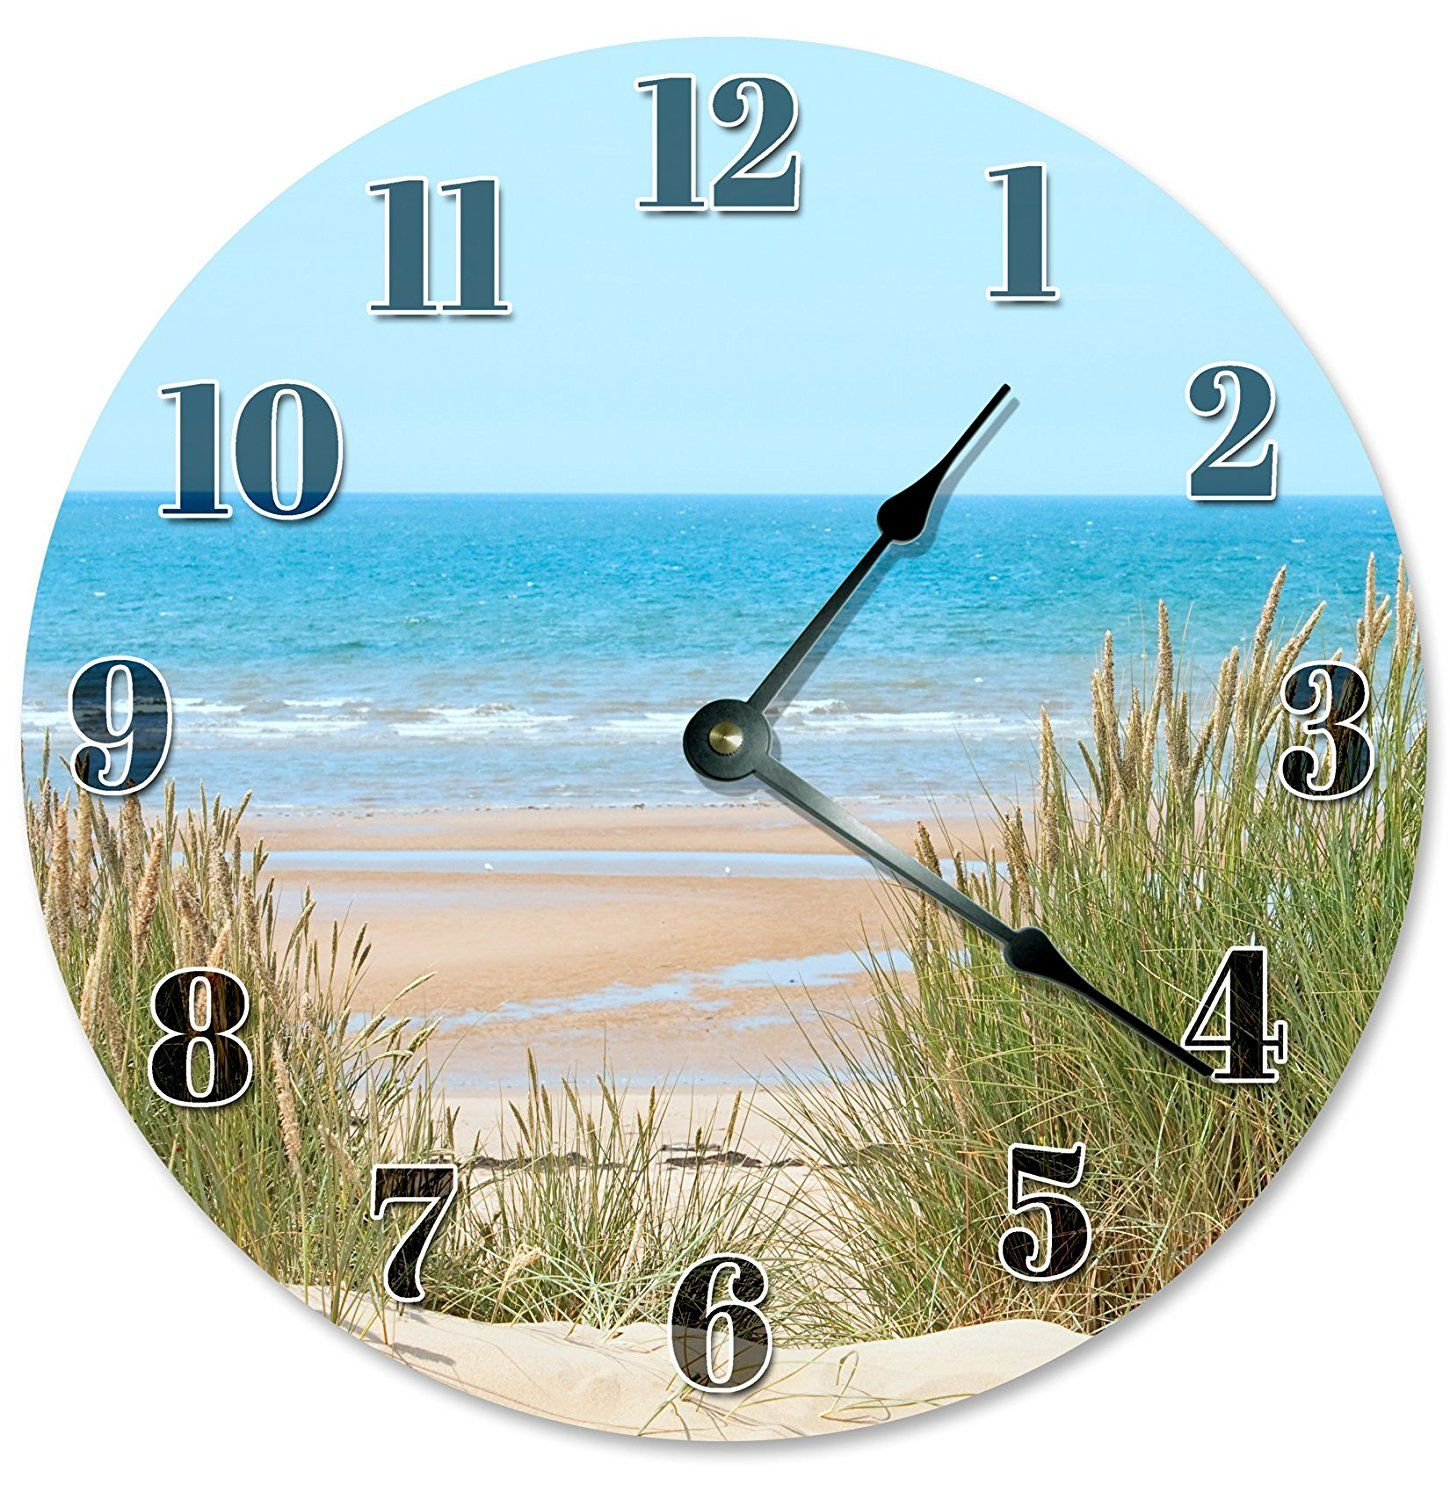 BEACH DUNES Clock Large 105 Wall Clock Decorative Round Circle